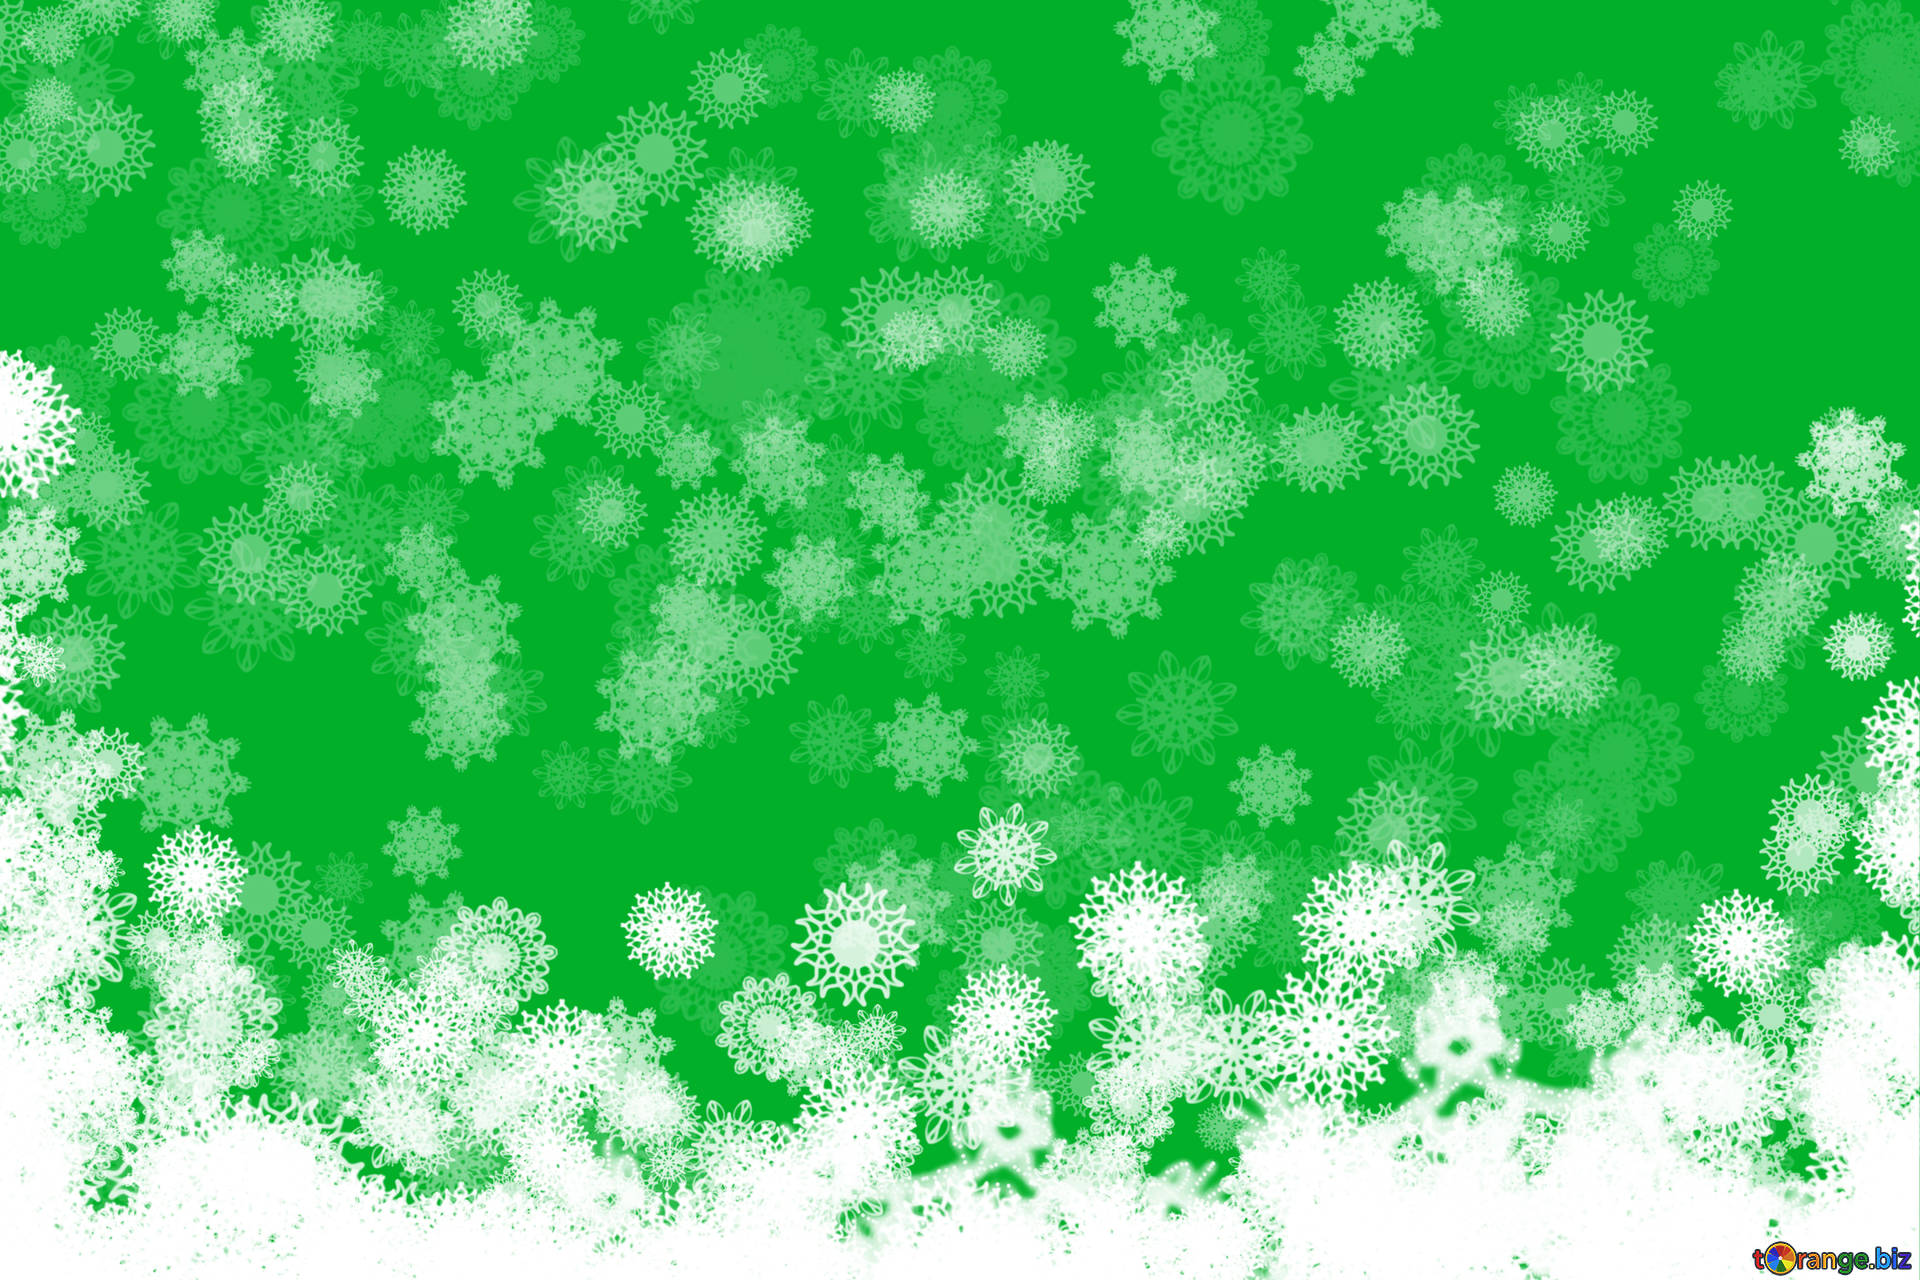 New year backgrounds clipart background new year green.